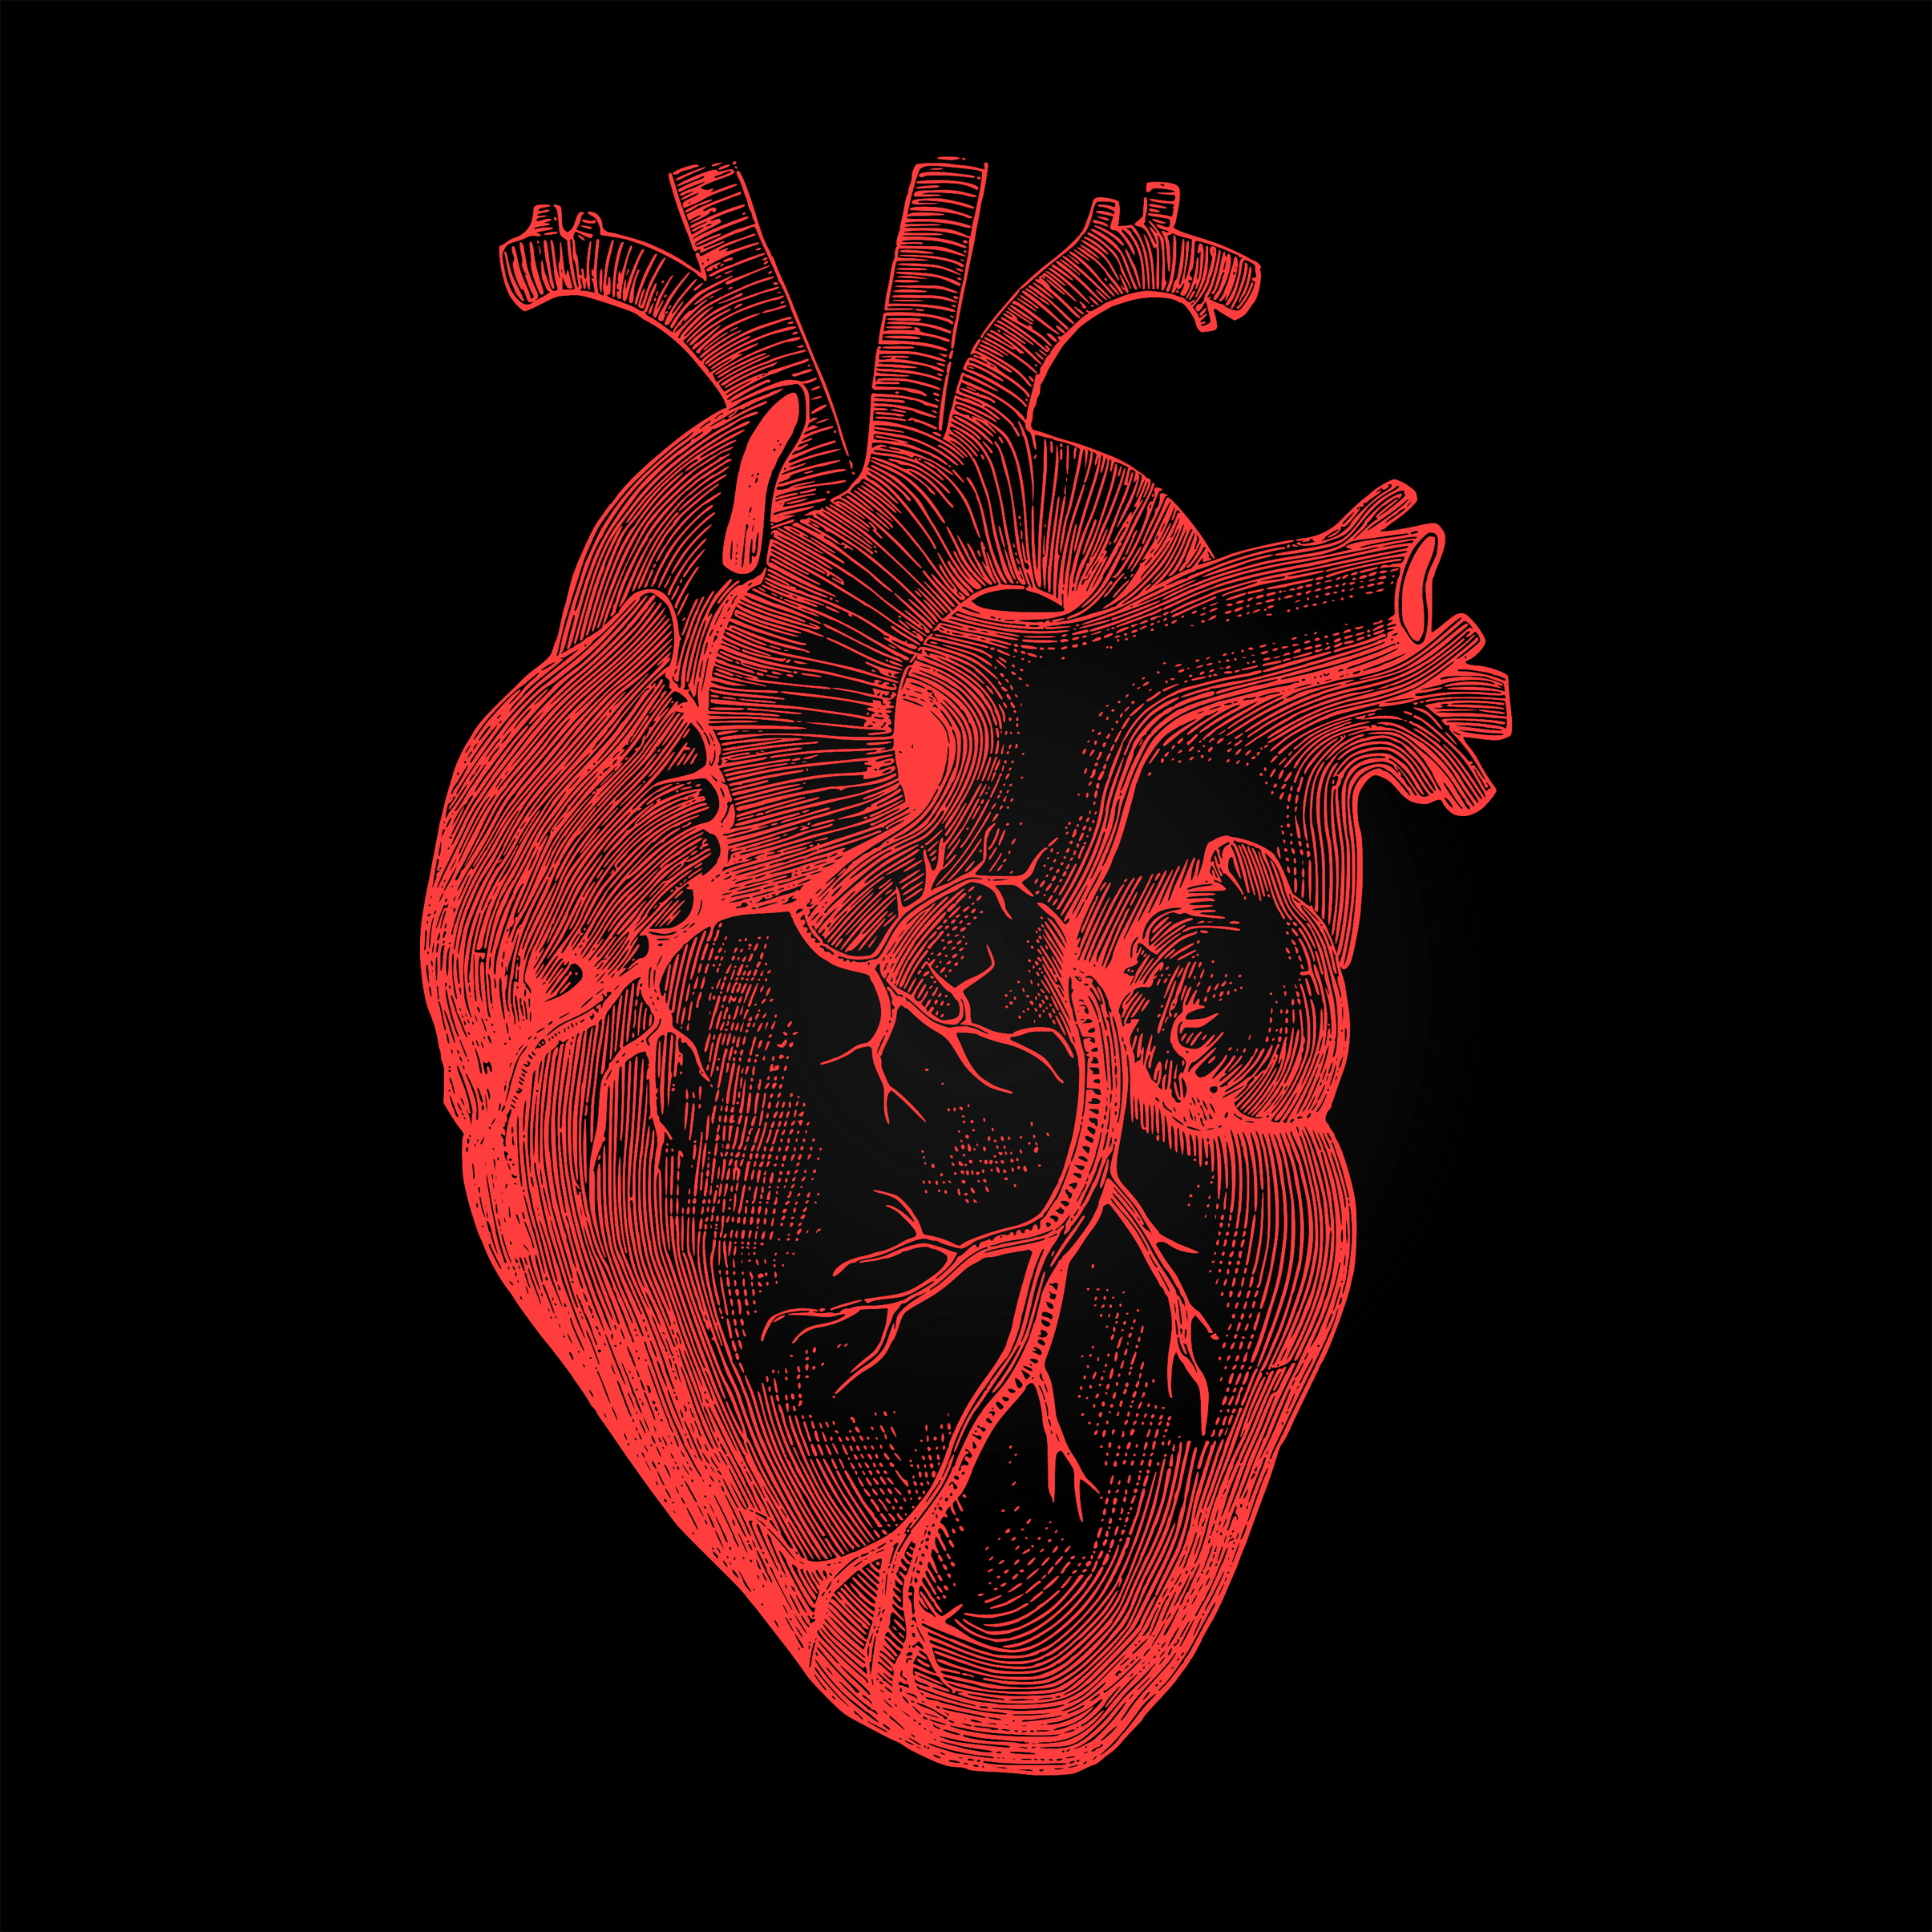 Human heart - anatomical rendering on dark background photo